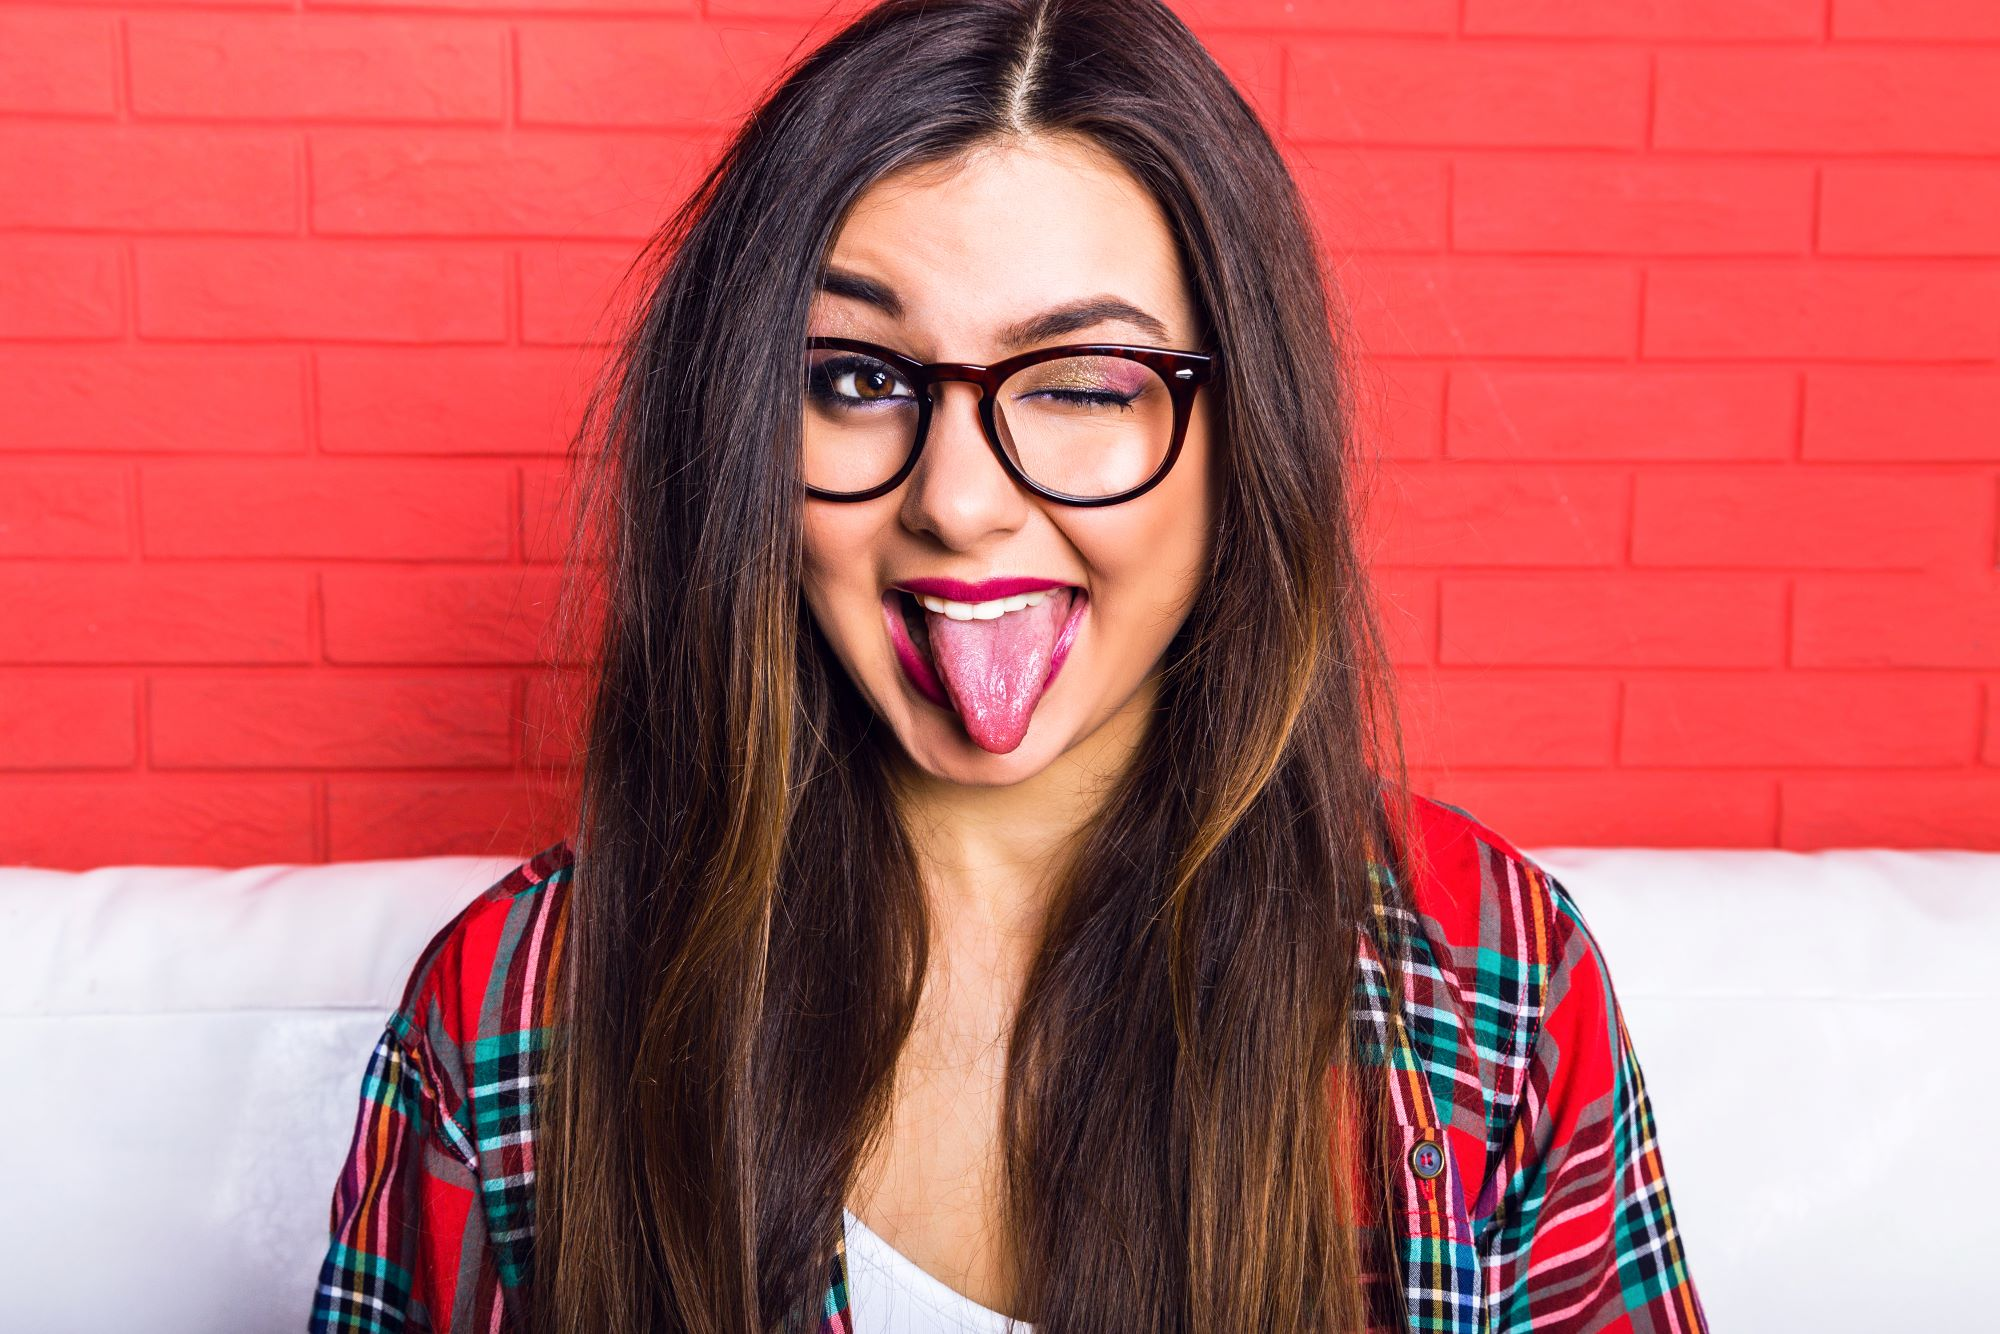 Girl in red plaid shirt sticking out her tongue to show what your tongue can tell you about your health